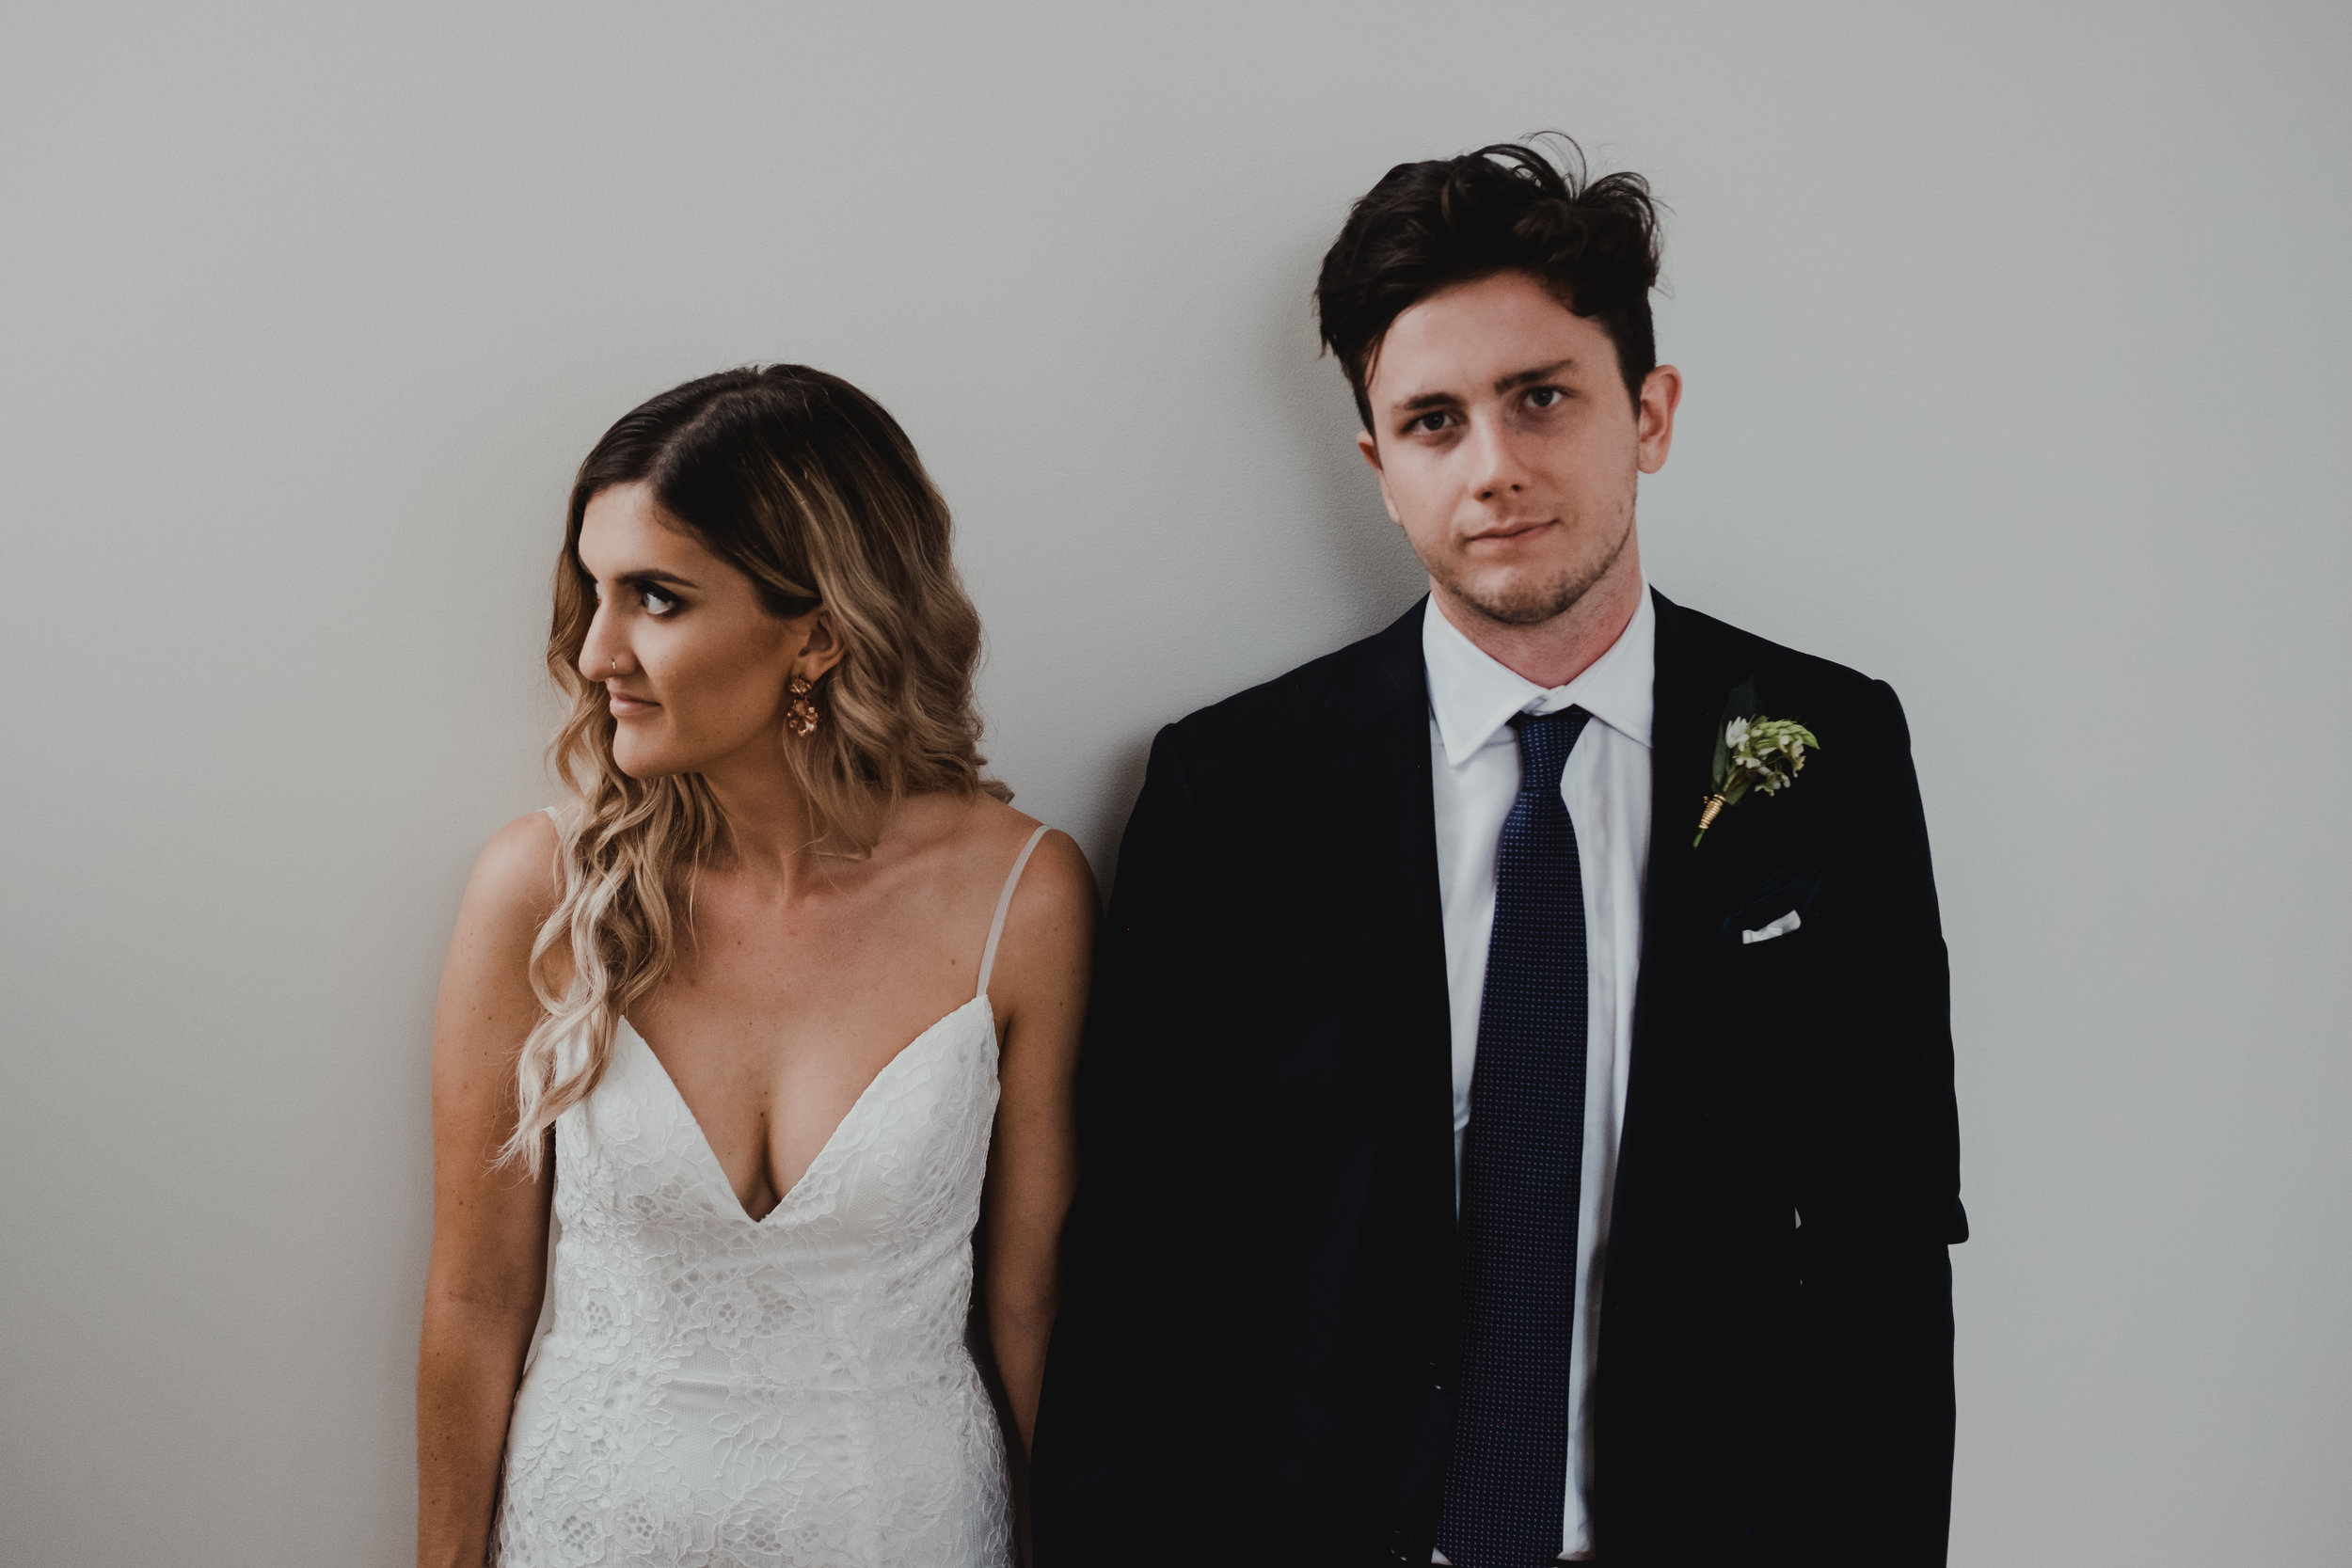 Hi! -  We are Castle and Crown, a filmmaking husband and wife duo who have been creating wedding films for adventurous lovers since 2015. We'd love to tell your story.